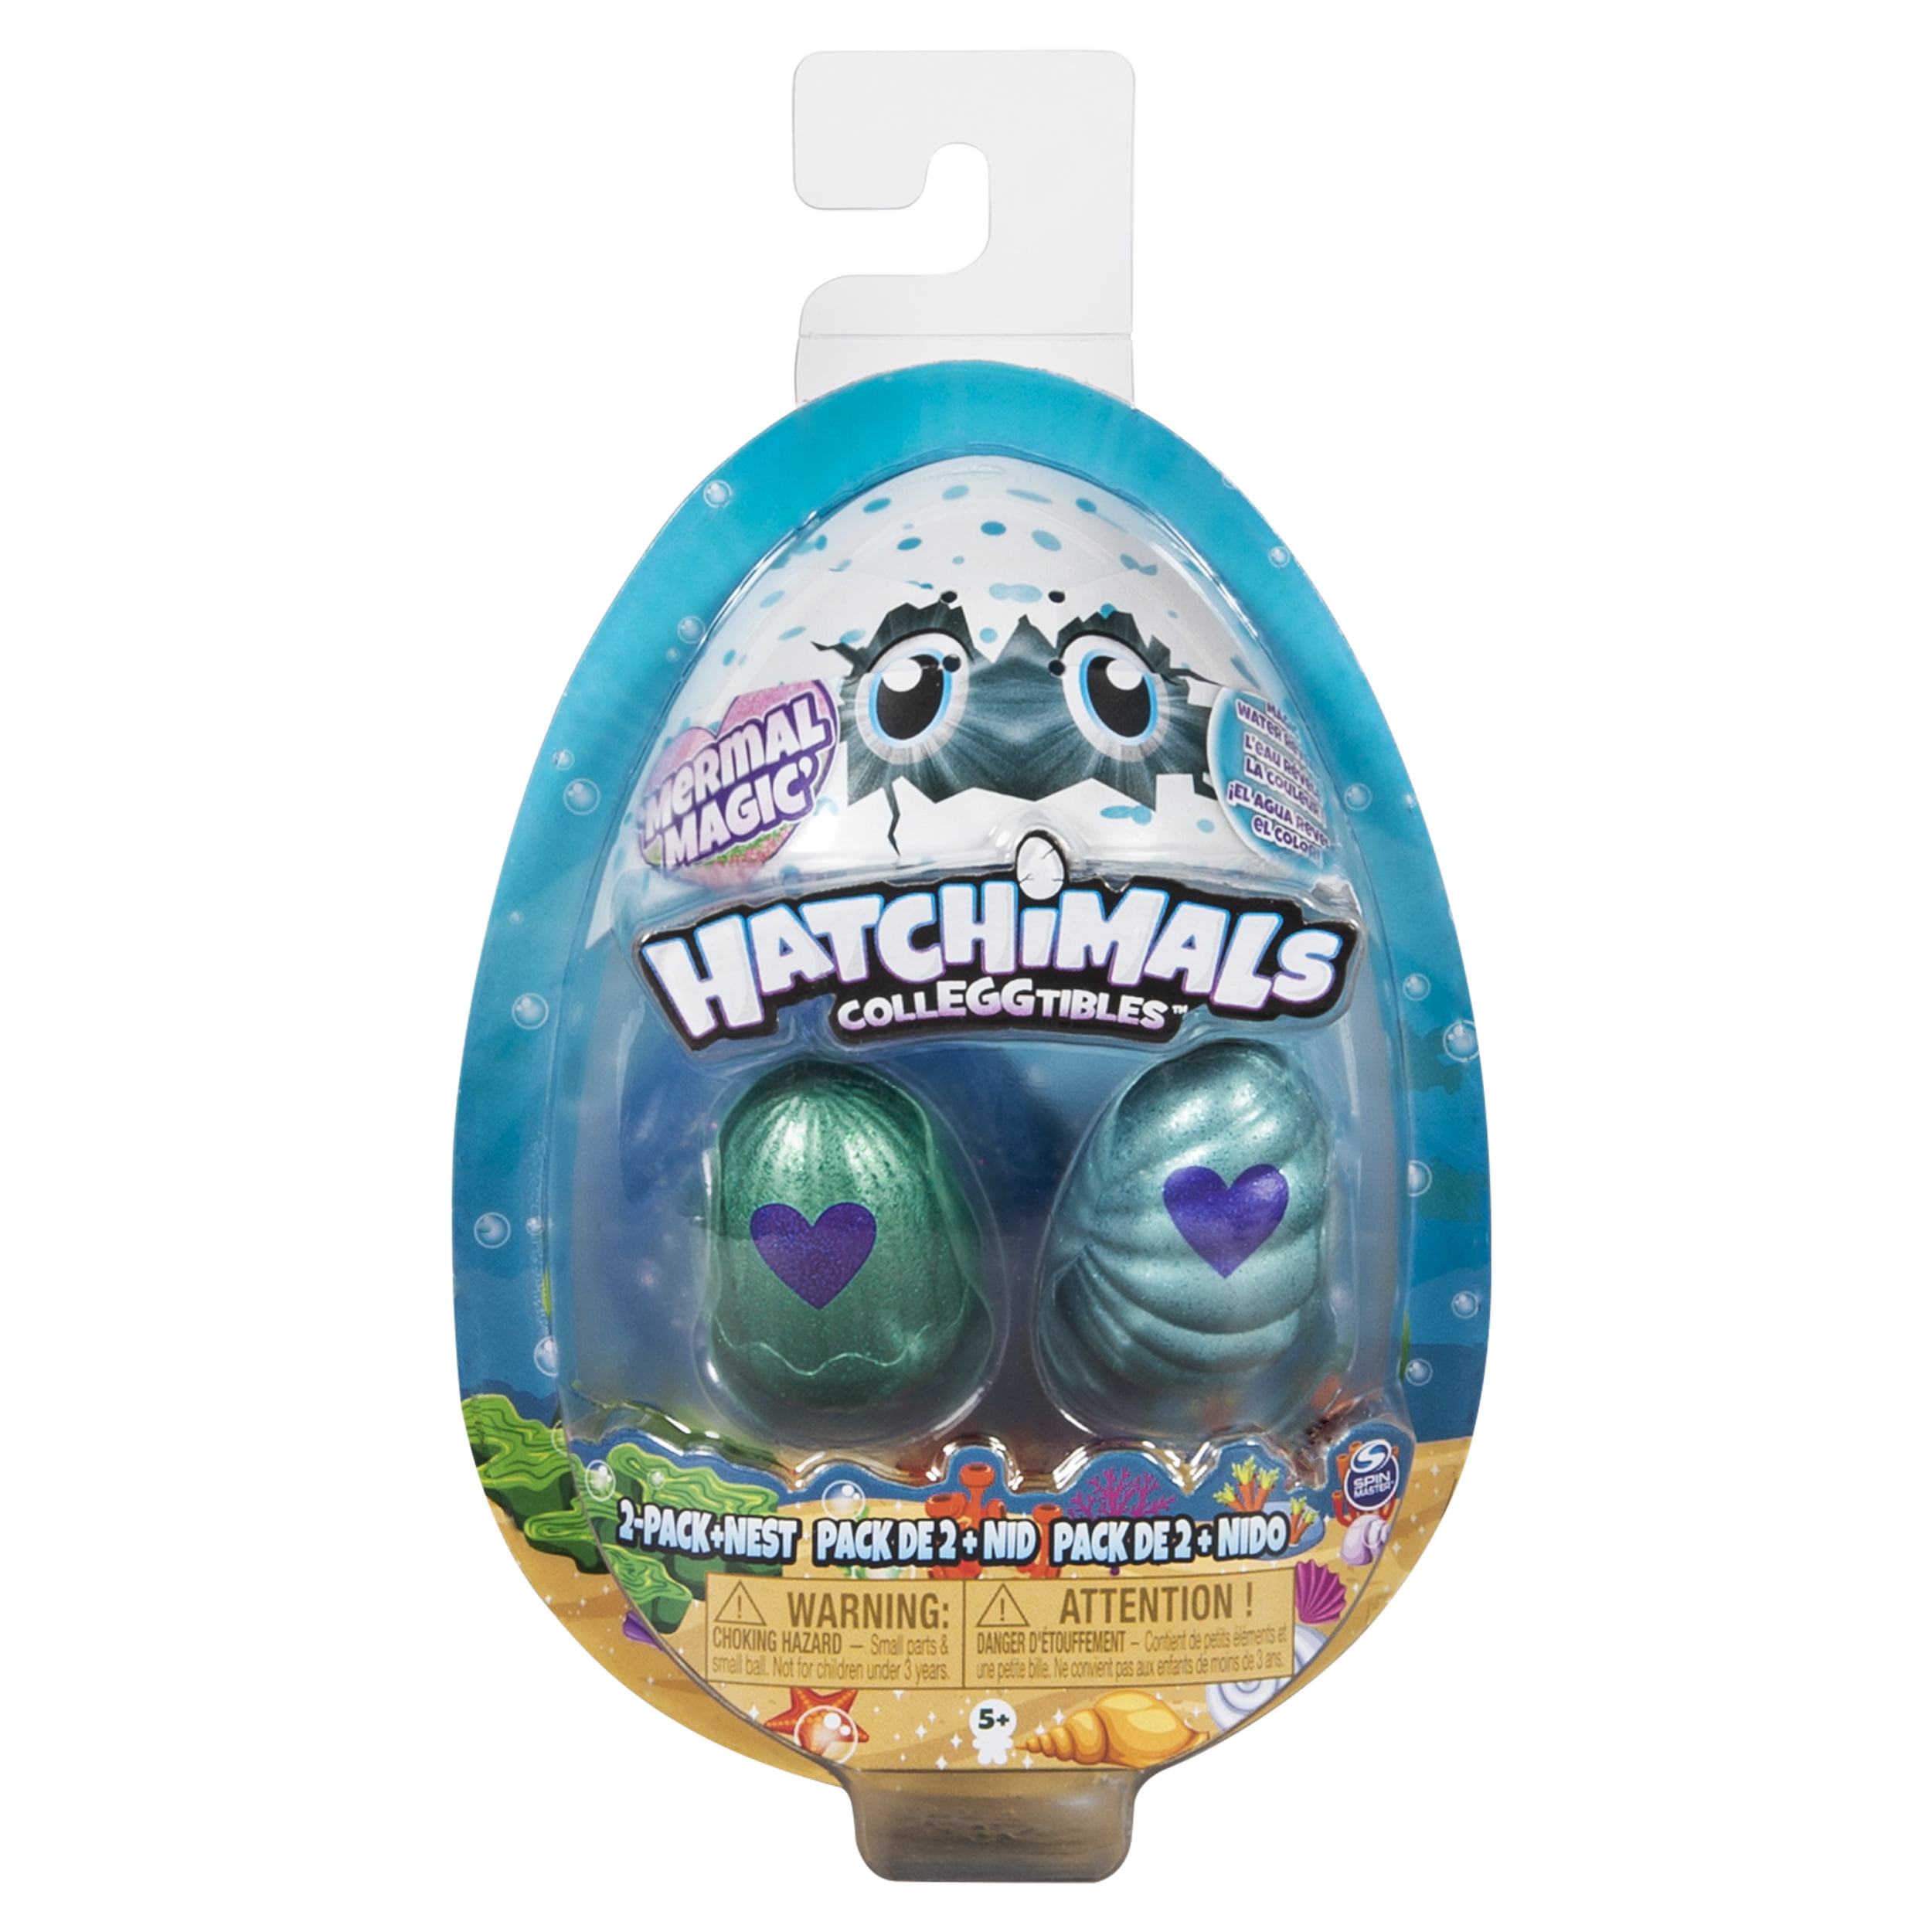 Hatchimals CollEGGtibles, Mermal Magic 2 Pack + Nest with Season 5 Hatchimals, for Kids Aged 5 and Up (Styles May Vary)